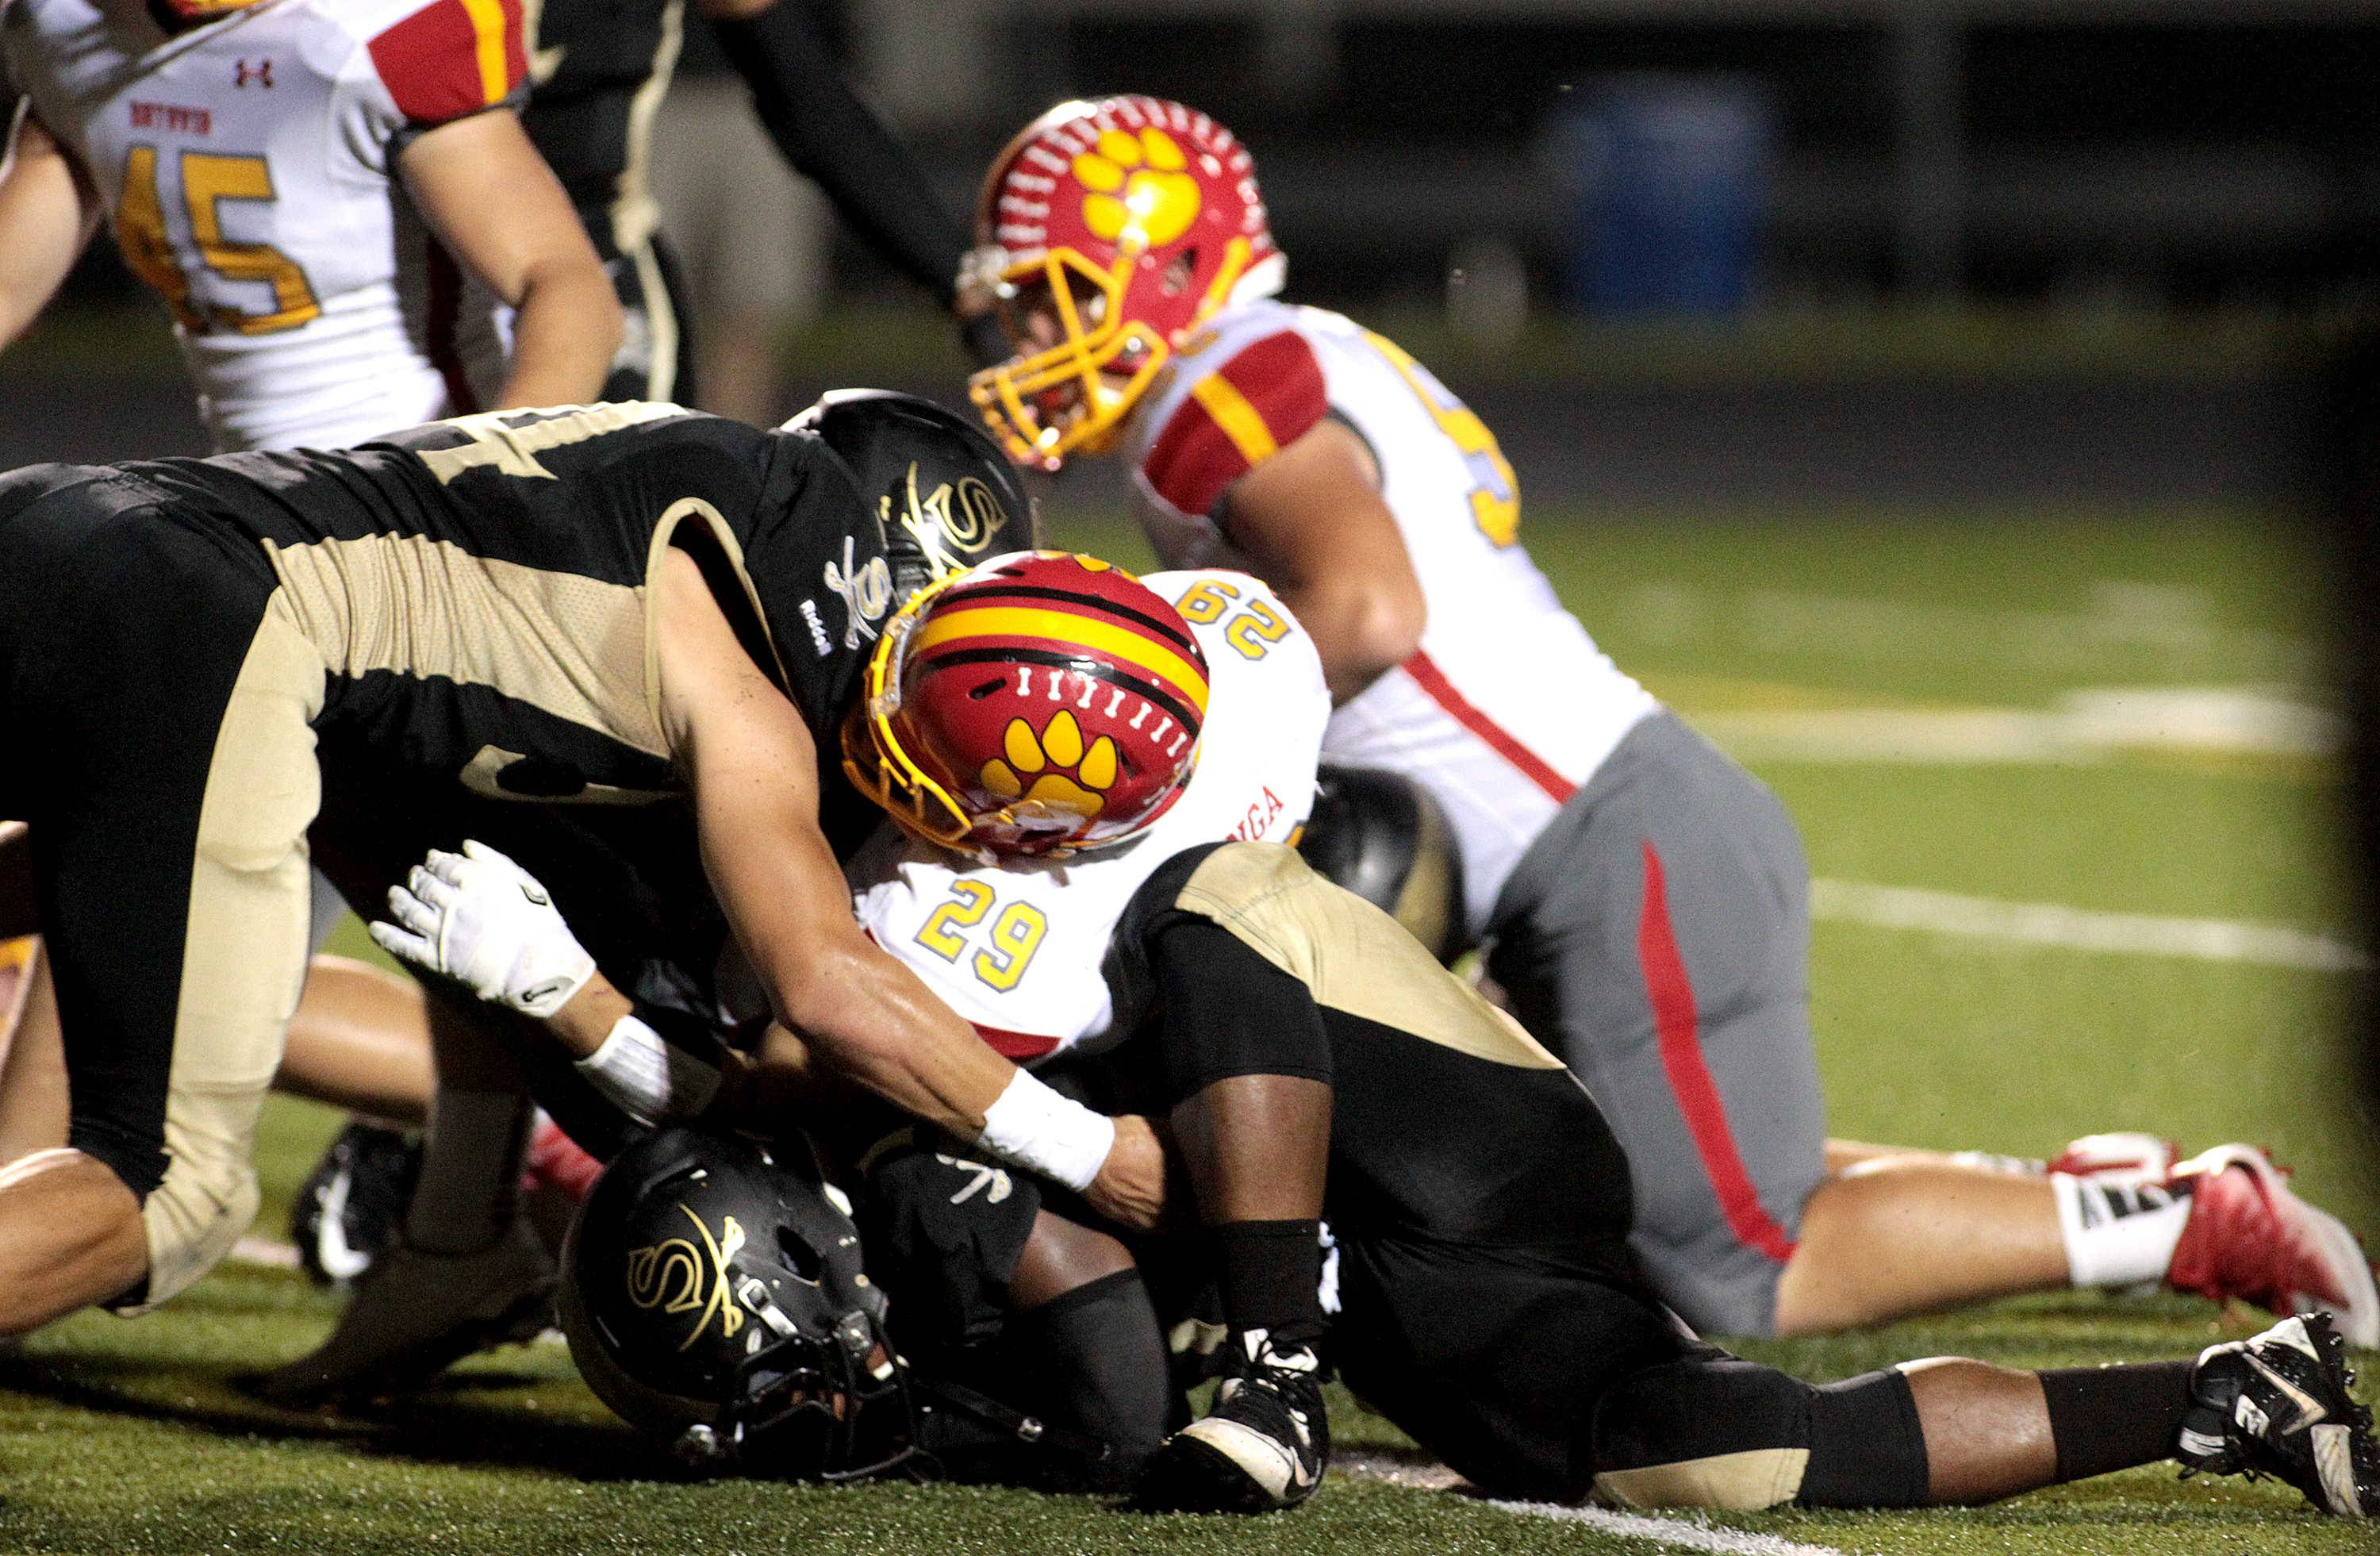 Batavia's Matthew Huizinga (29) gets lost in the pile after scoring a touchdown during a game at Streamwood Sept. 9.